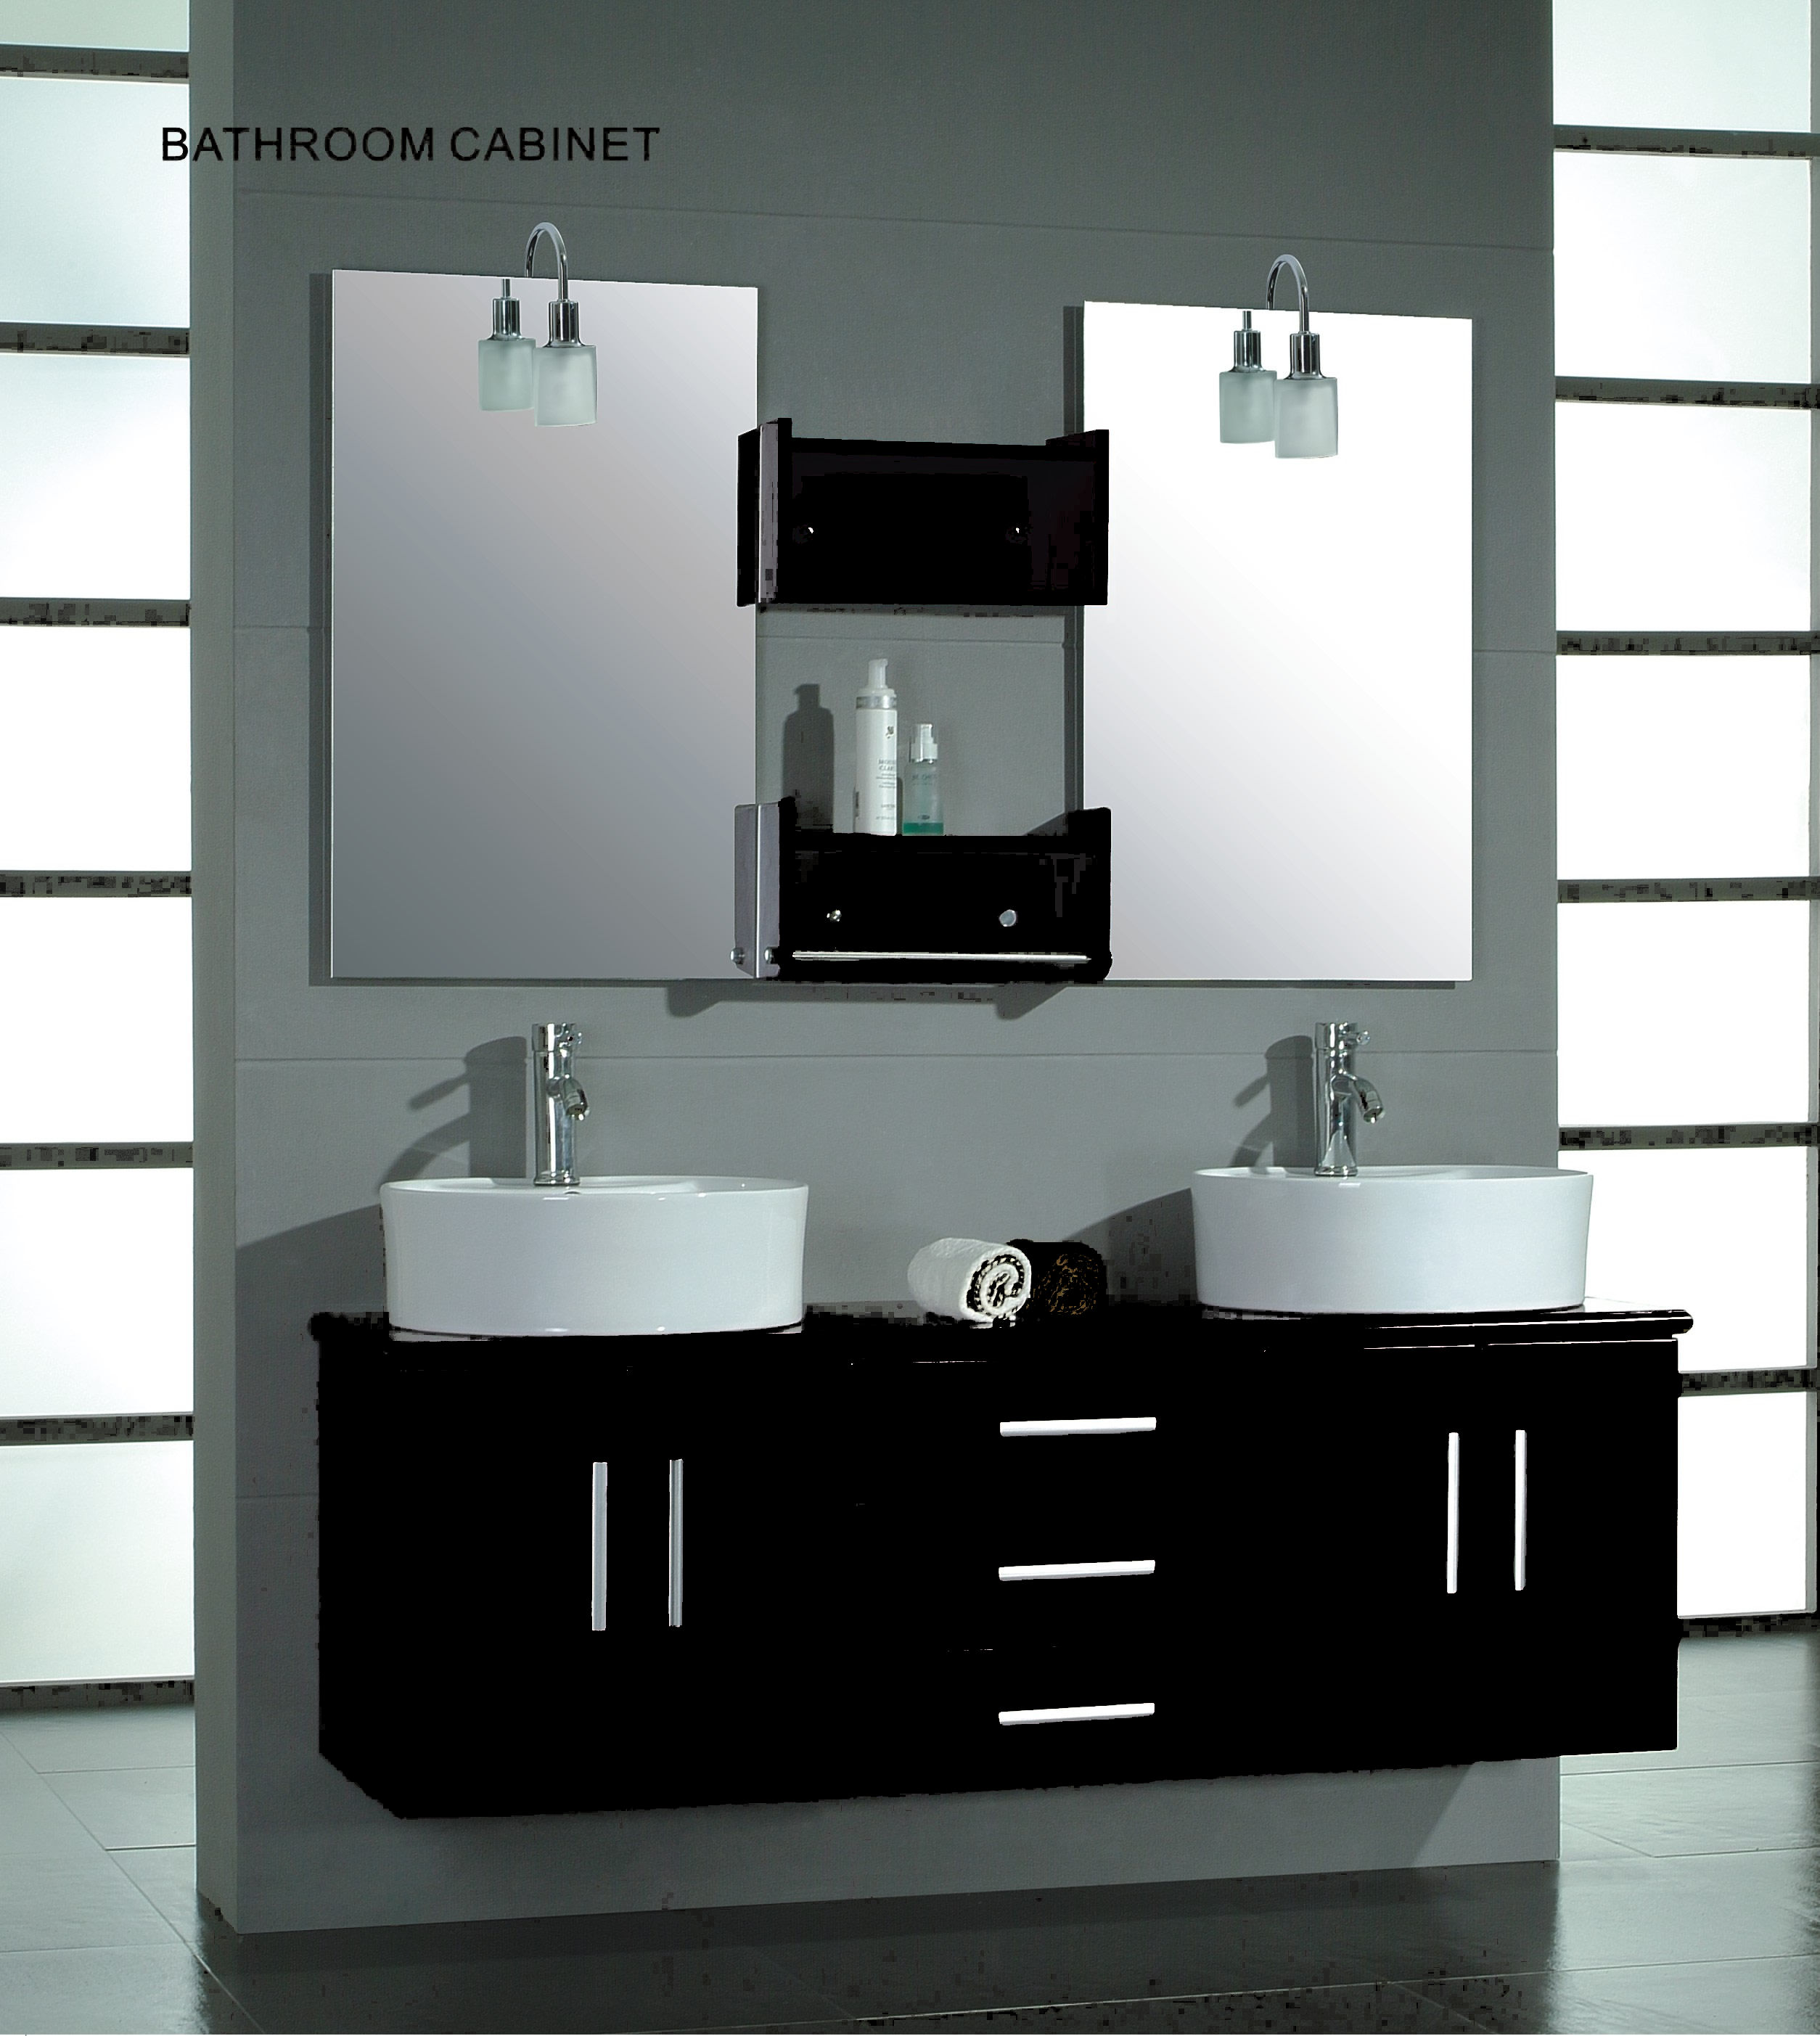 bathroom double espresso set wall product vanity design portland element in cabinet sink mount